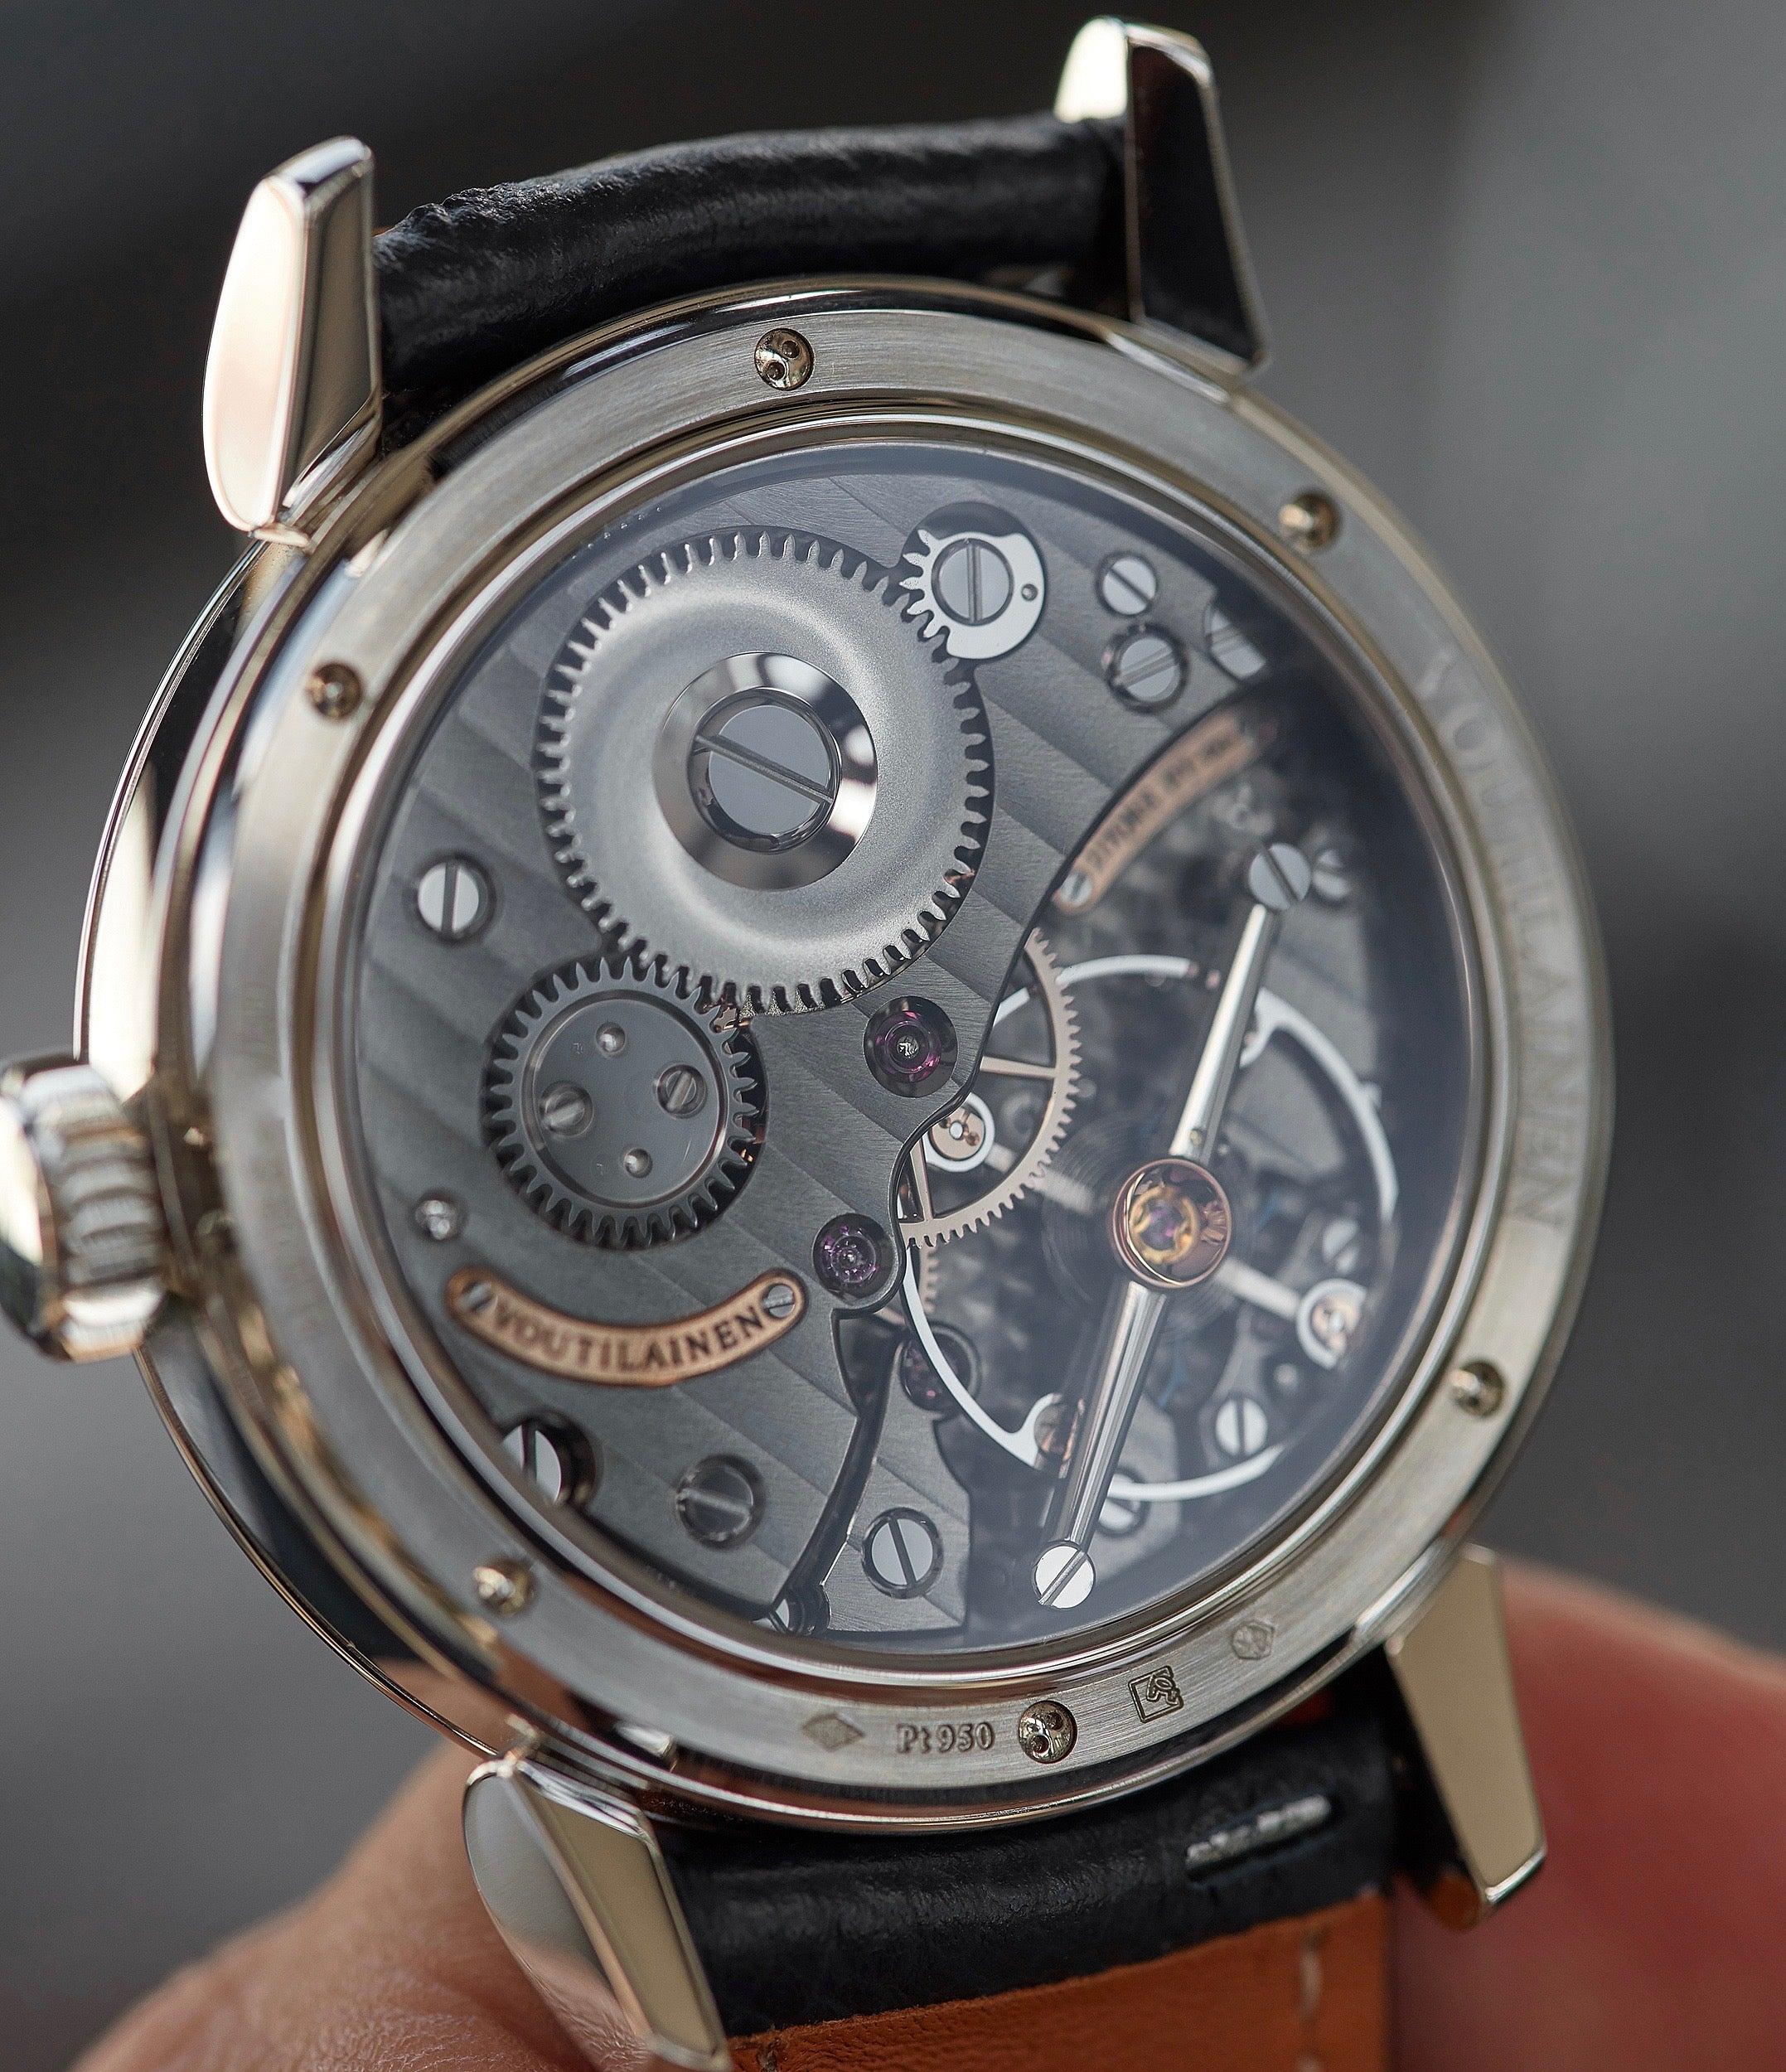 manual-winding Voutilainen 217QRS Retrograde Date platinum dress watch for sale online at A Collected Man London approved re-seller of independent watchmakers